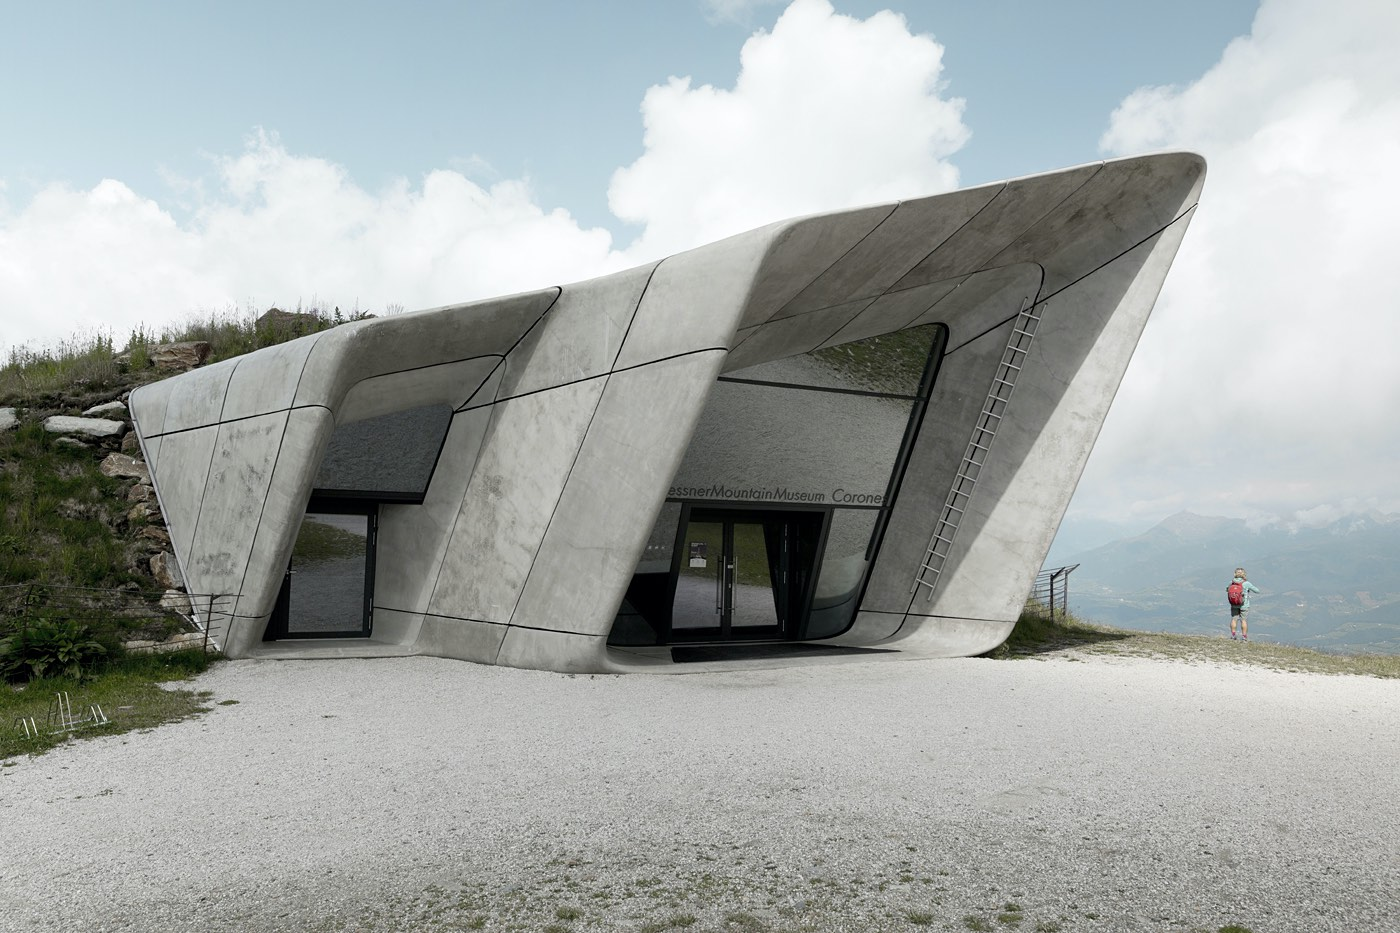 a concrete museum on the hill